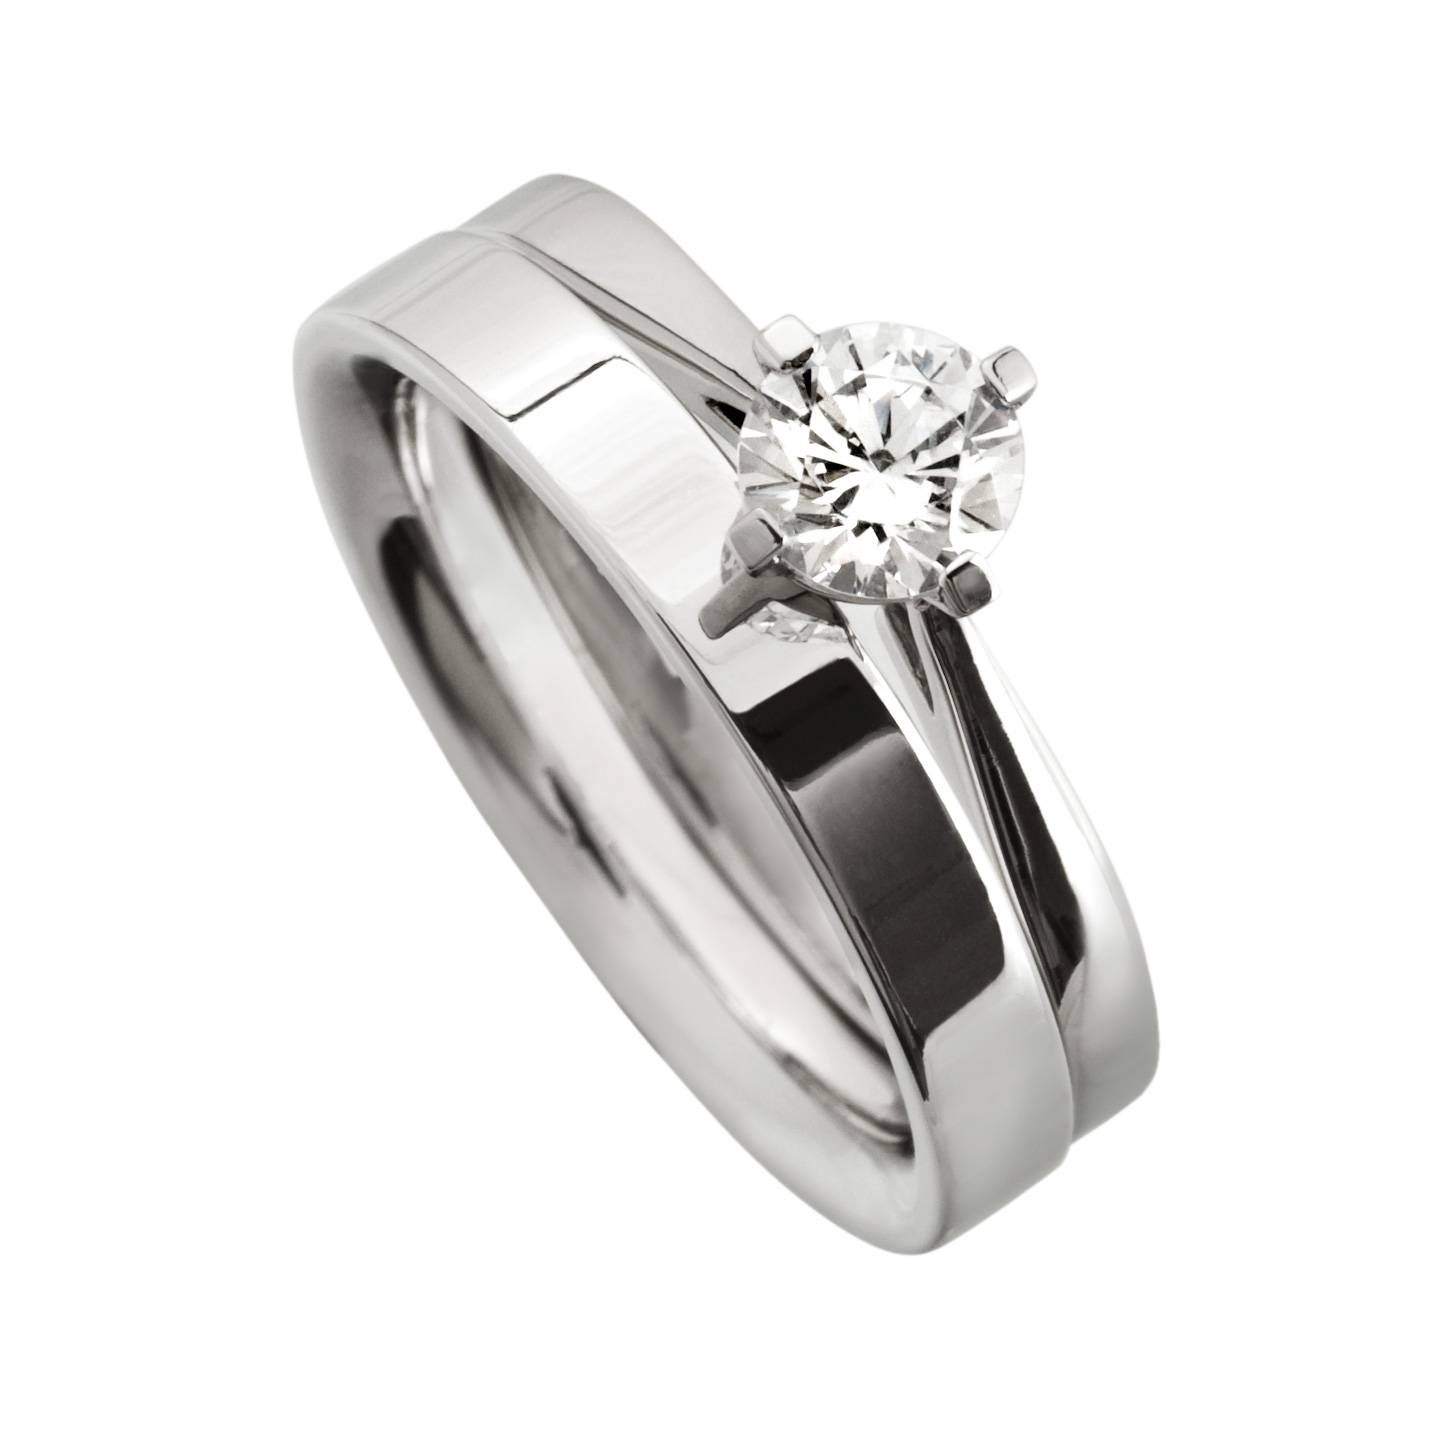 modern flat wedding ring mitchel co for modern design wedding rings gallery - Flat Wedding Rings